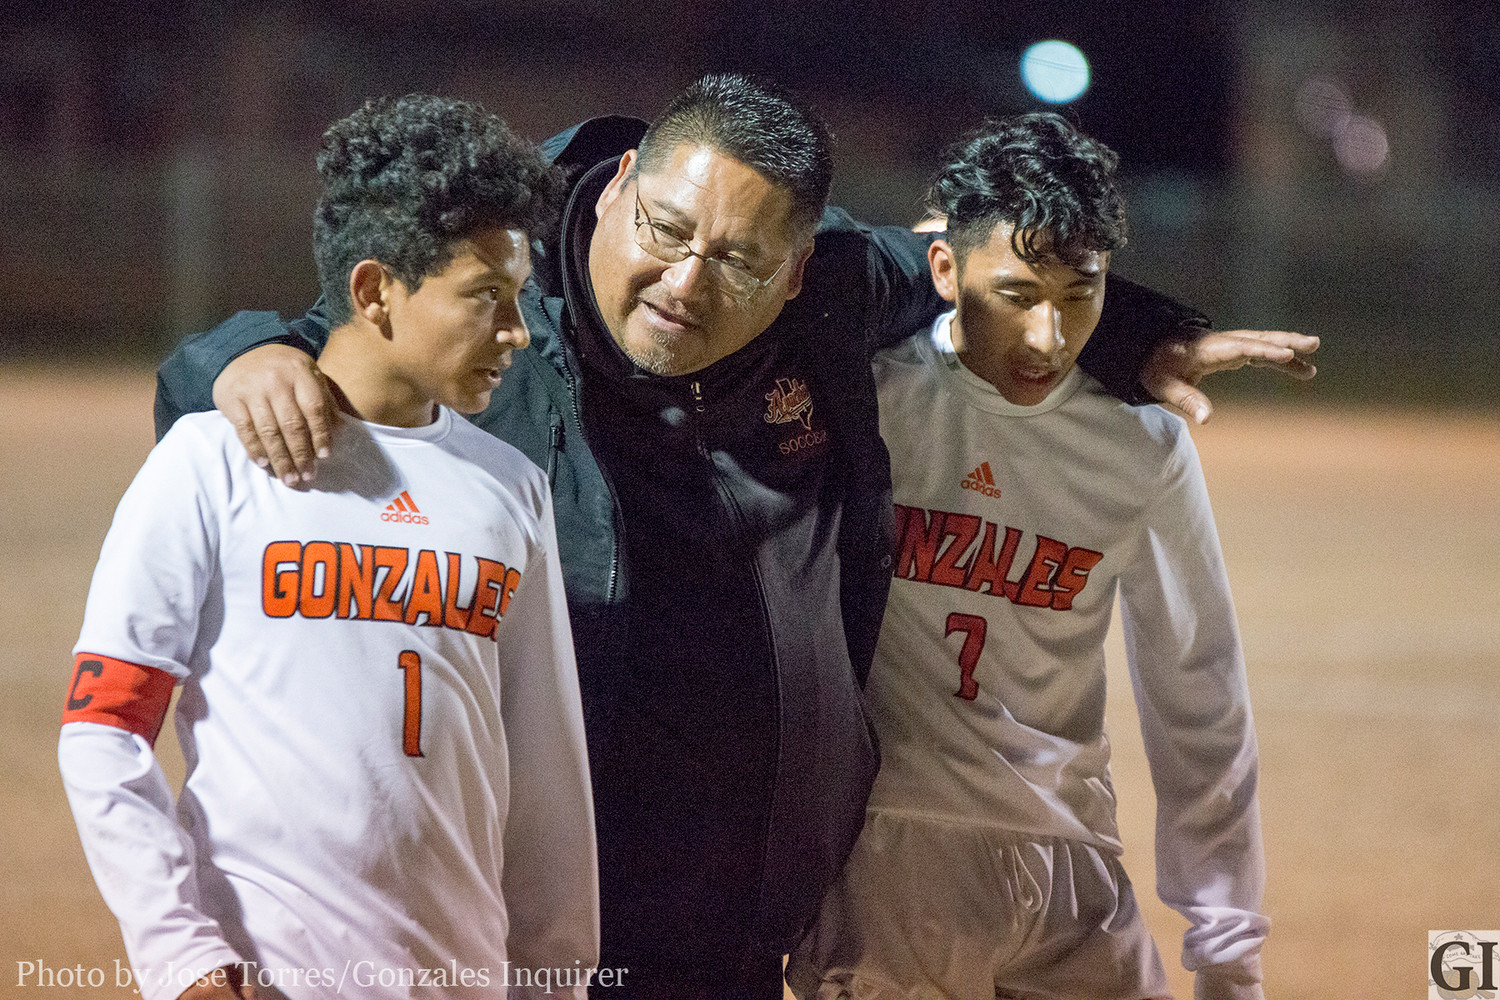 Head Coach Greg Ramirez advises players Anthony Veliz (1) and Luis Lejia (7) during the half.